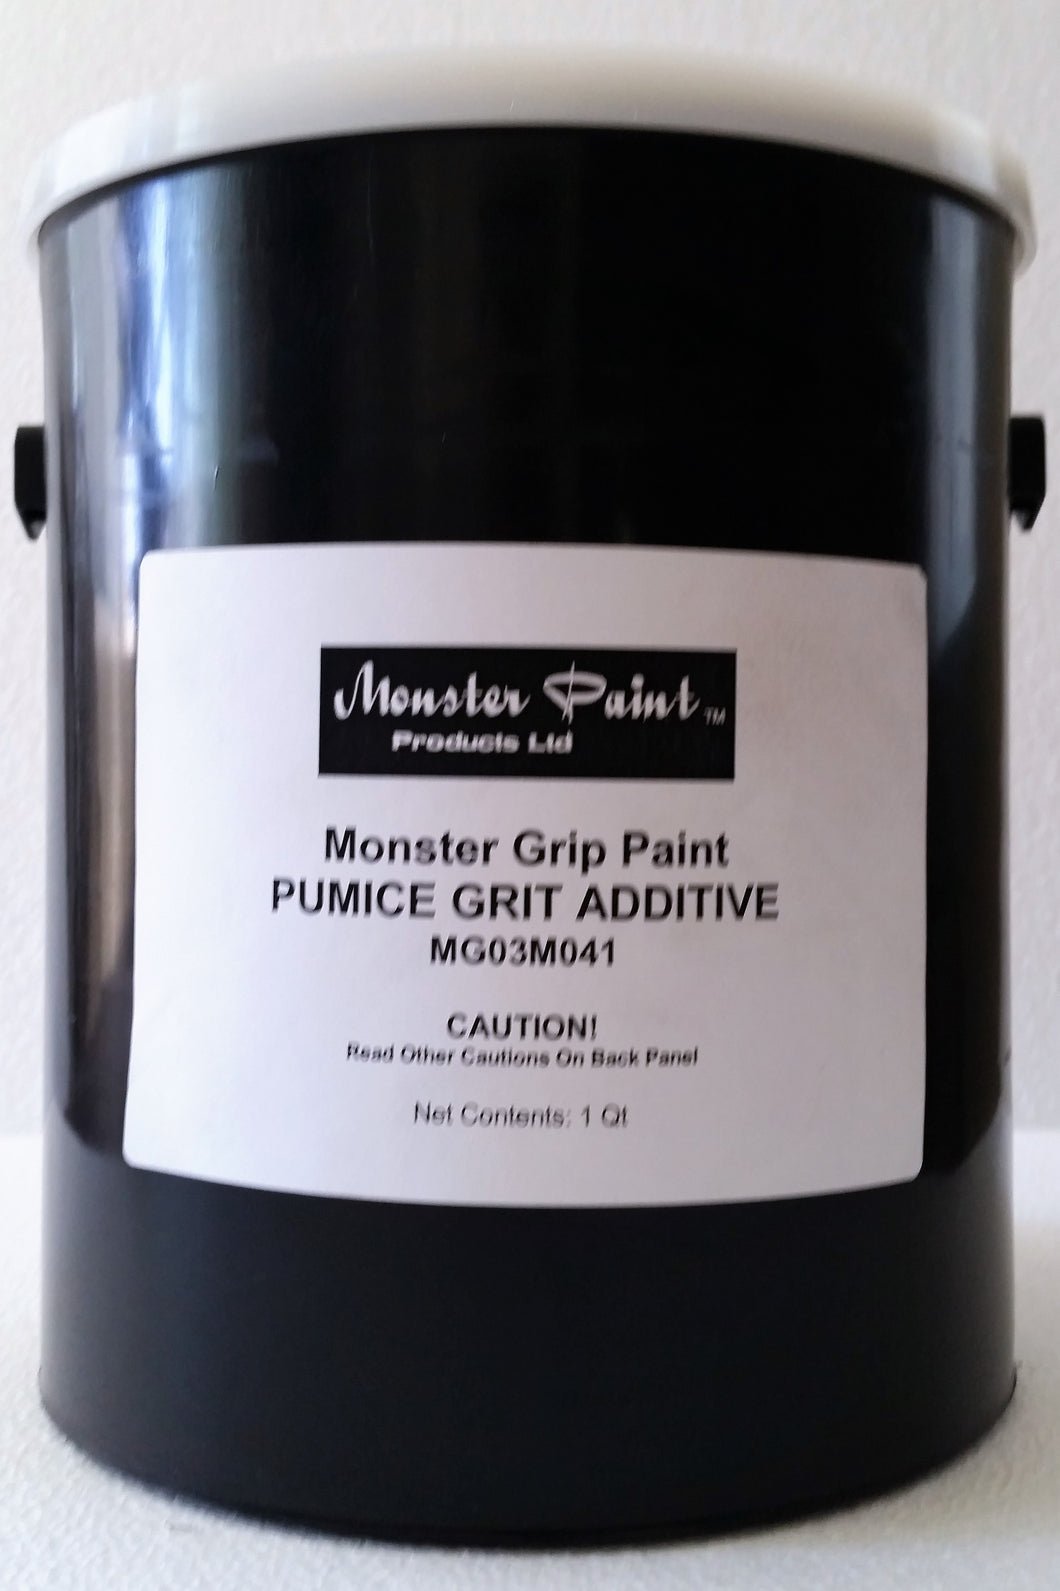 Anti-Skid Paint Additive - Pumice Grit * Made in USA - 5 Gallon Pail Qty. 1